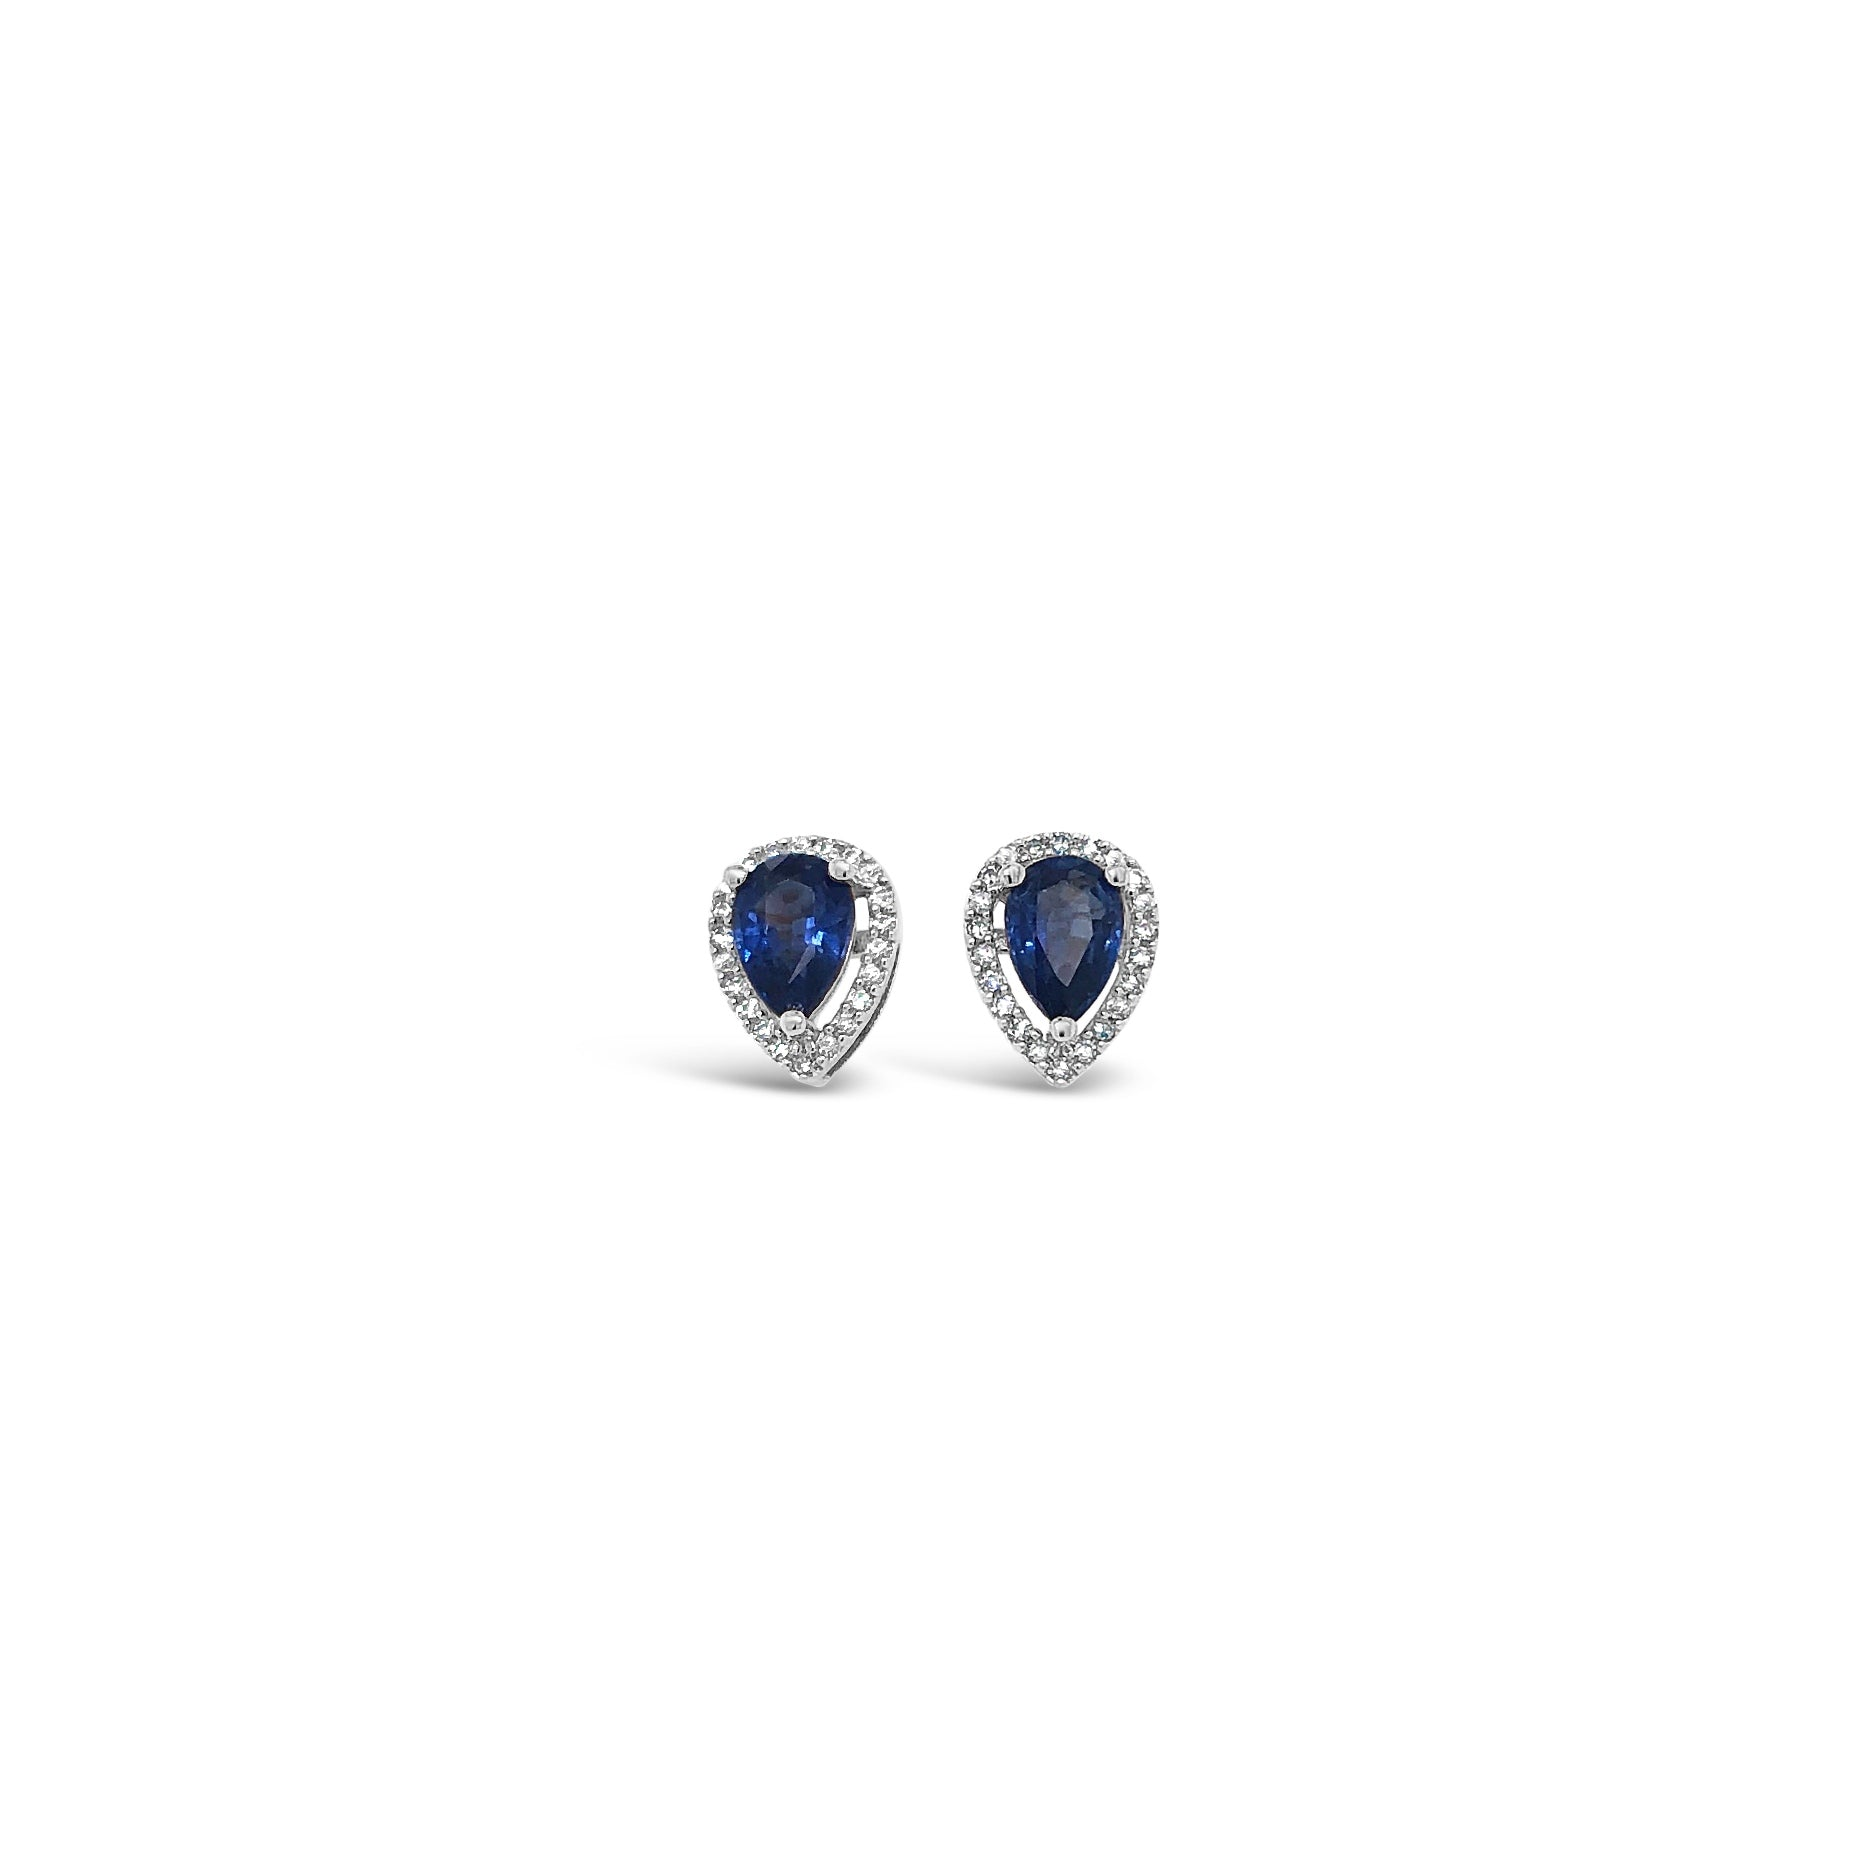 Pear Shape Kyanite Stud Earrings